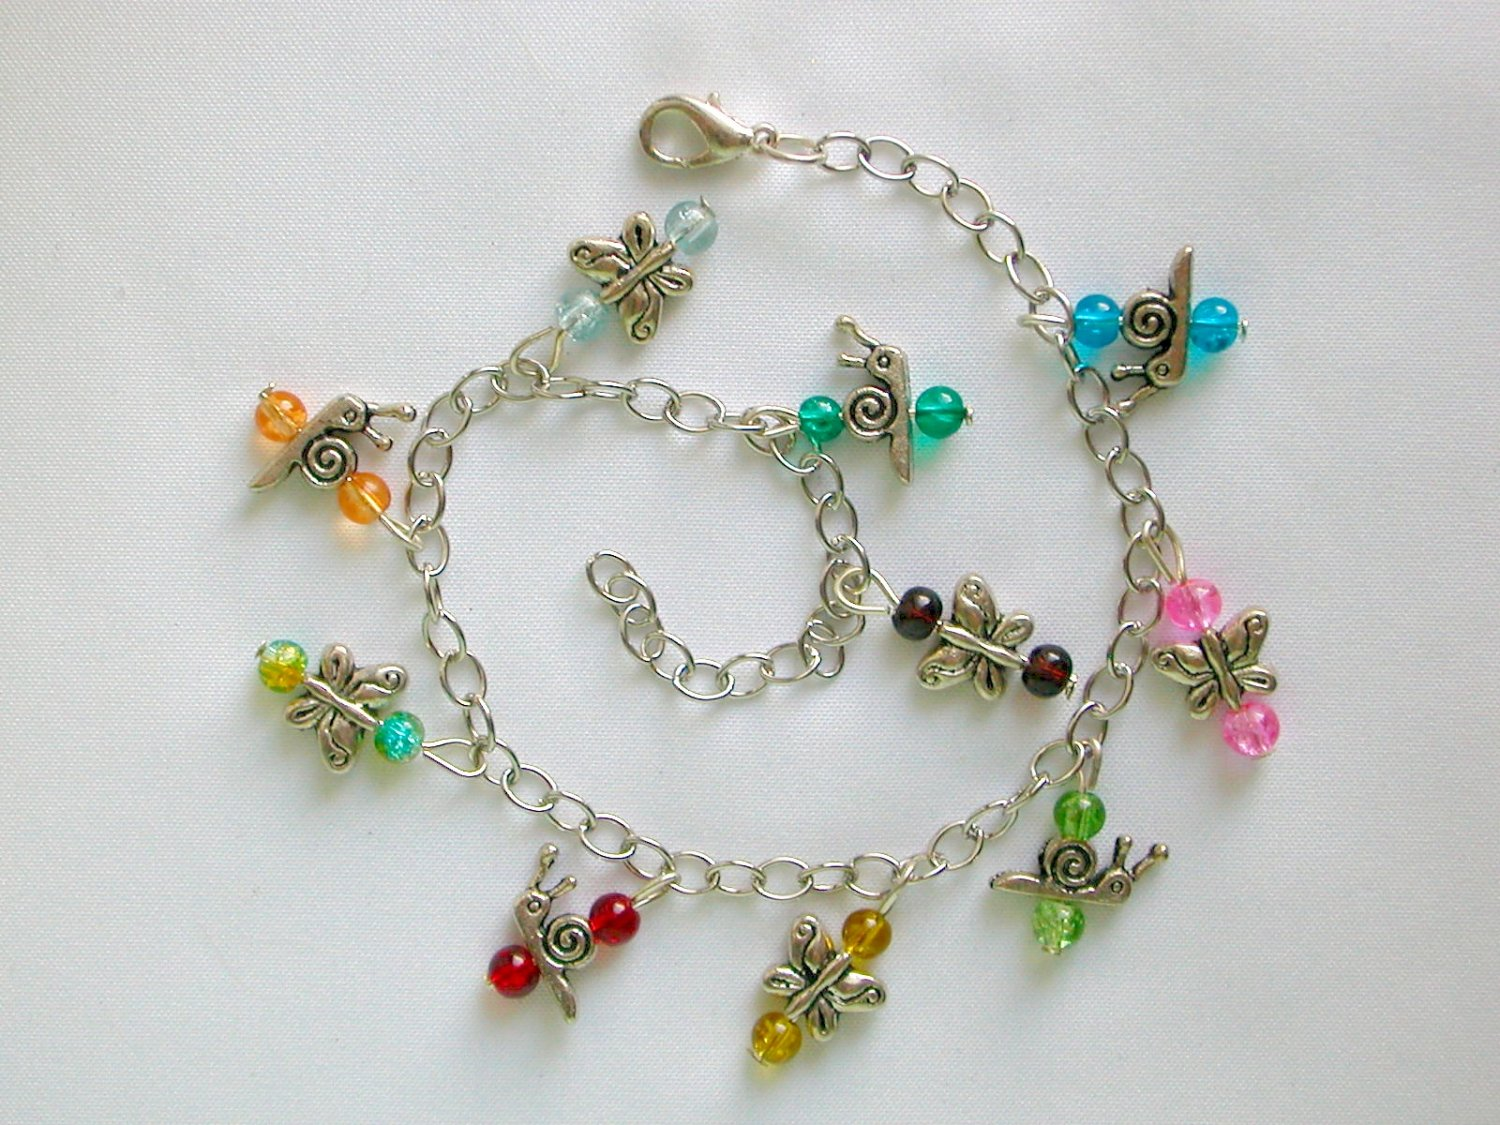 Butterfly Snail Rainbow Color Crackle Glass Bead Anklet Bracelet